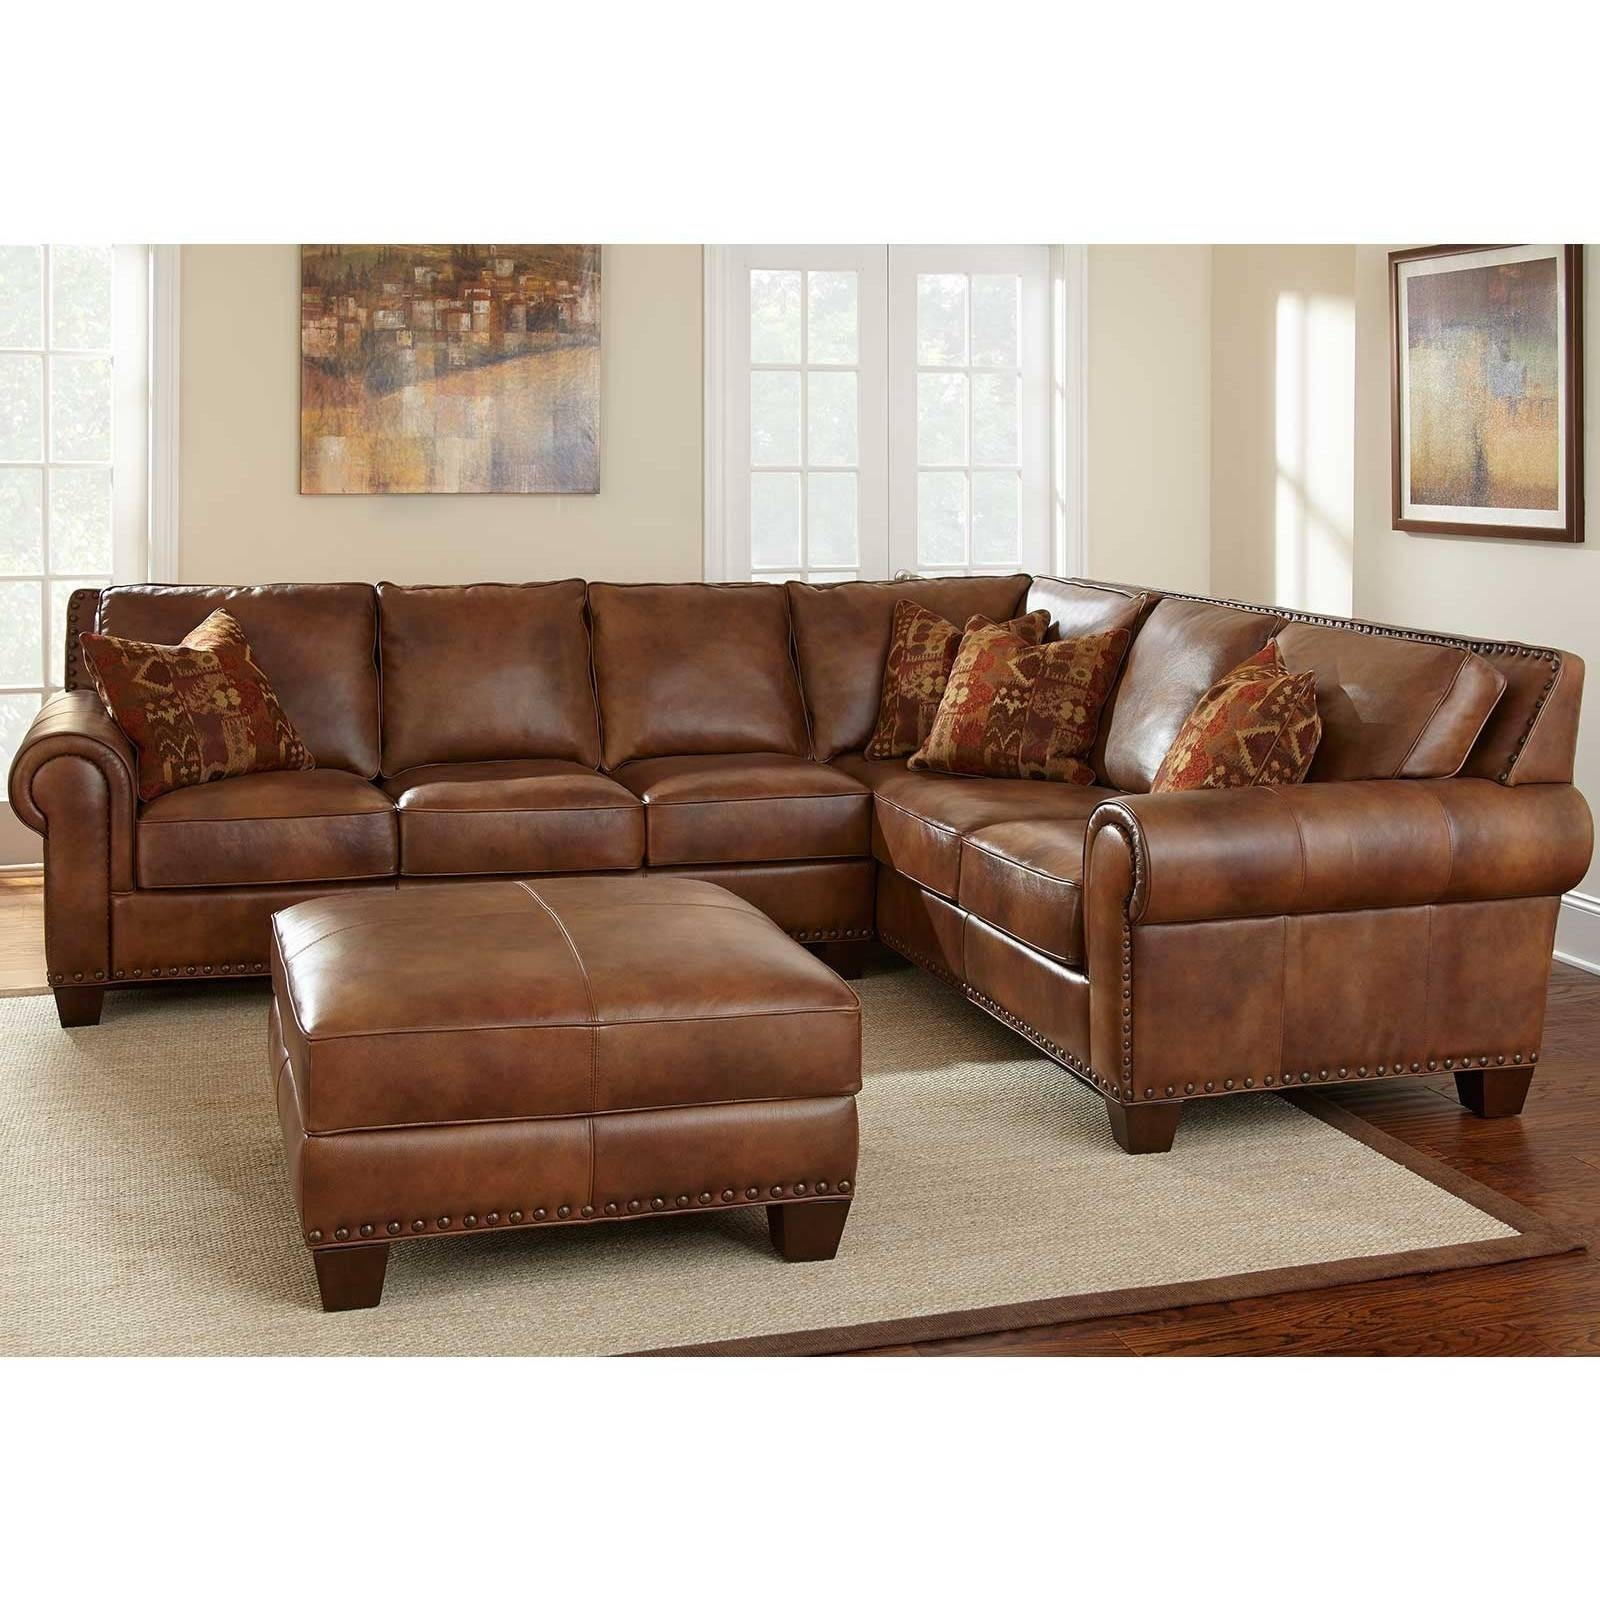 Sofas Center : Retro Sofas For Sale Remarkable Picture in Retro Sofas For Sale (Image 22 of 30)